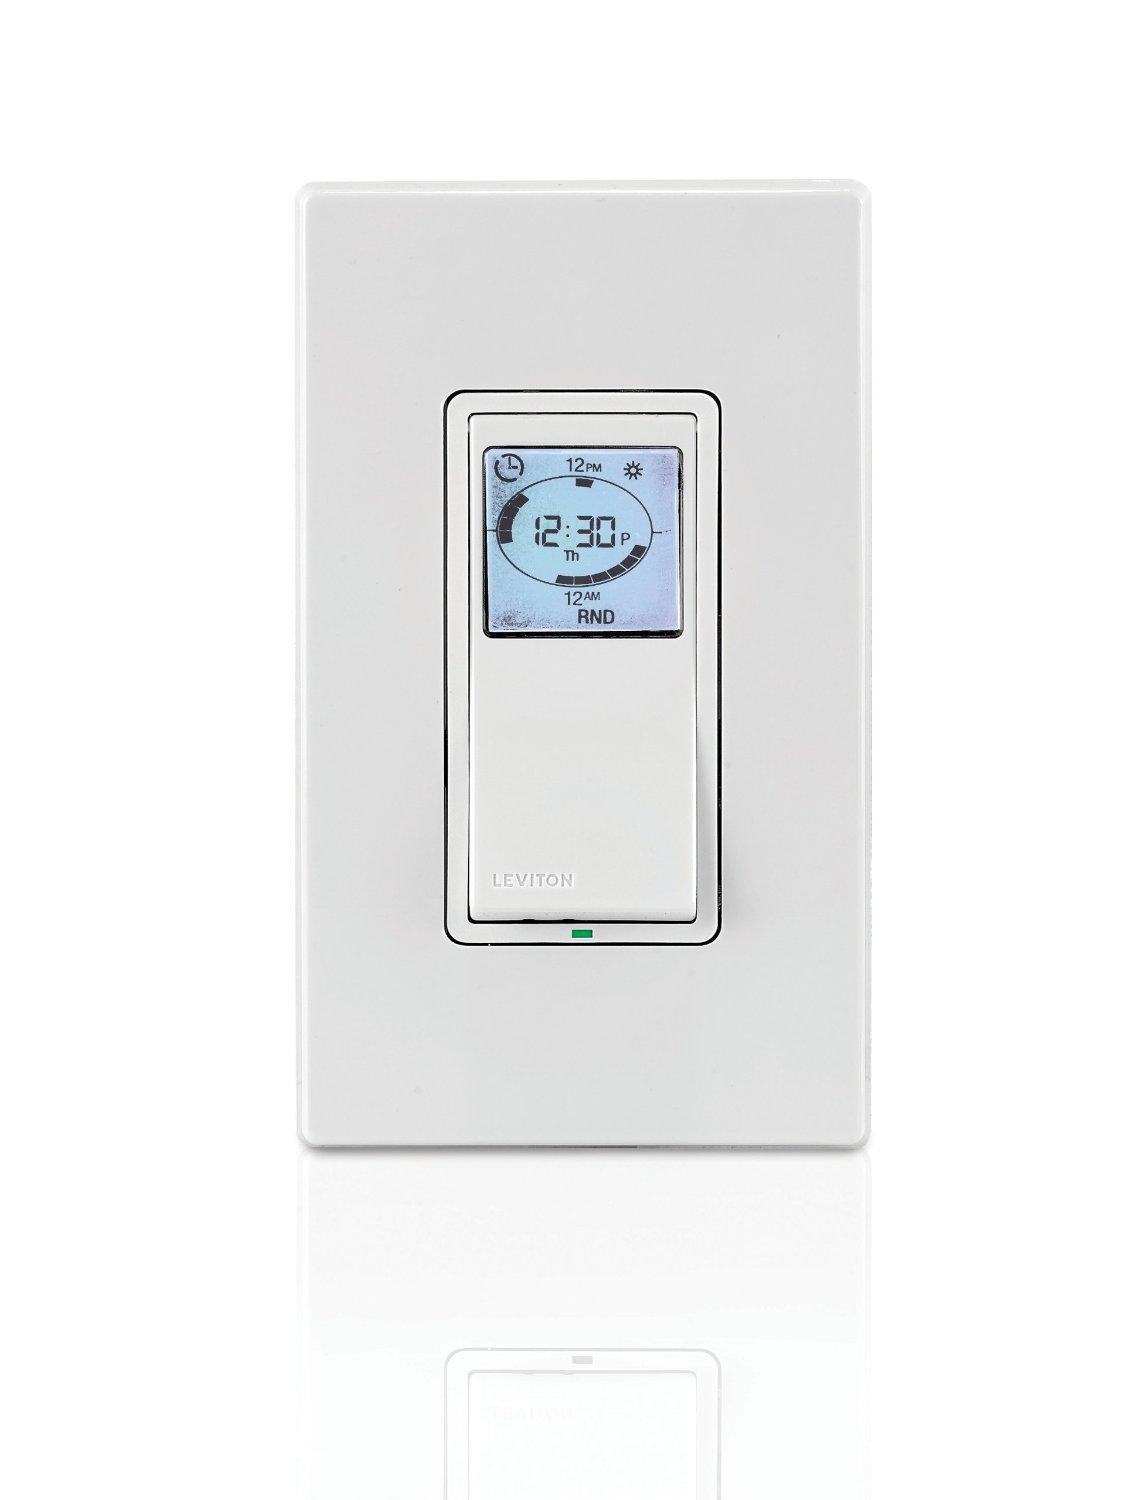 Leviton vpt24 1pz vizia 24 hour programmable indoor timer with from the manufacturer aloadofball Choice Image